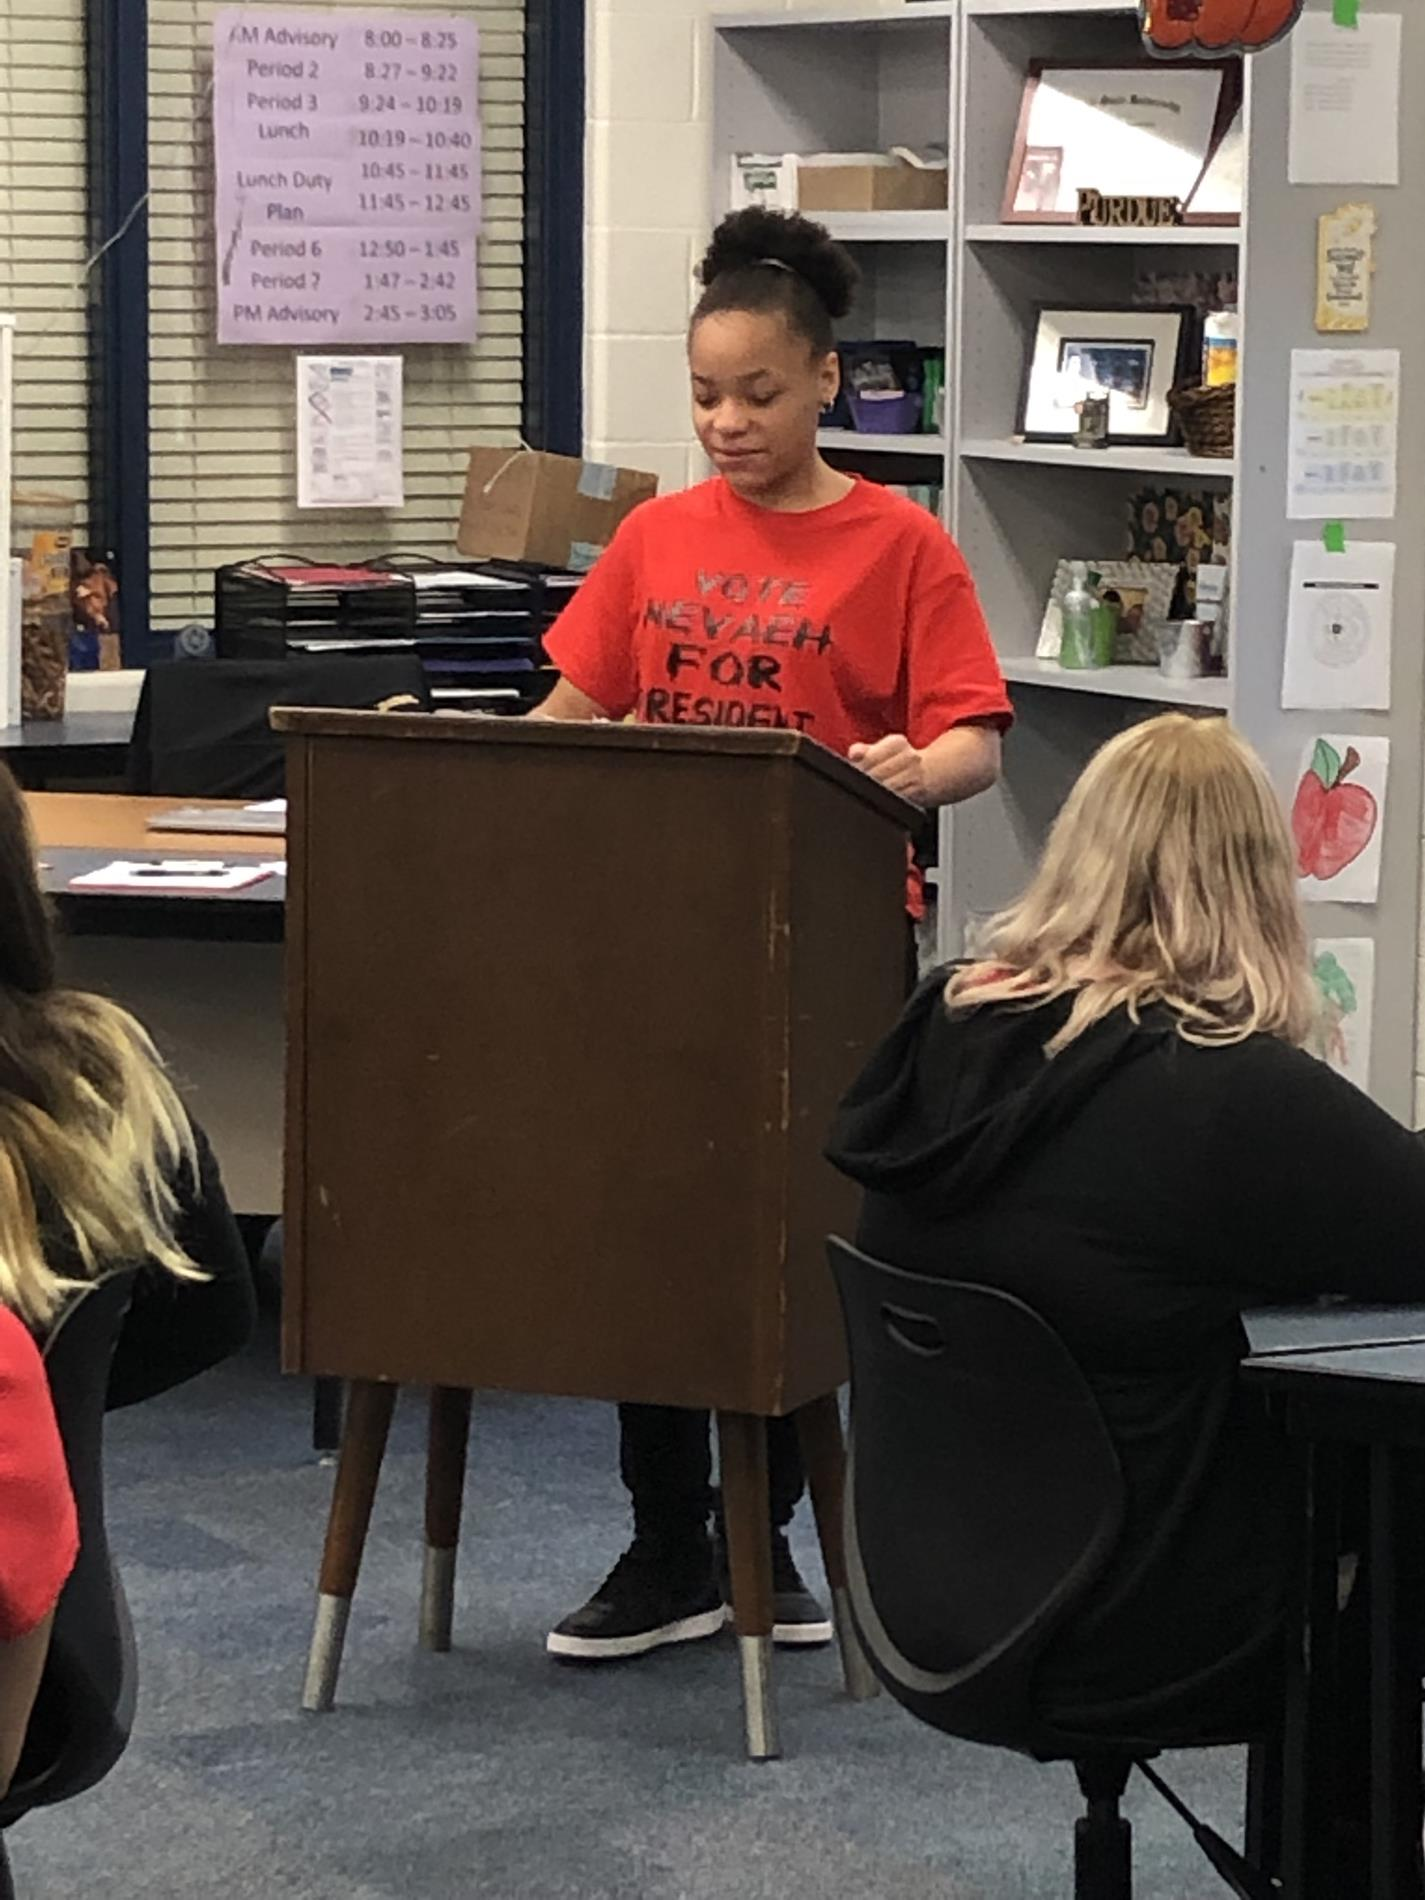 NJHS Officer Speeches and Election